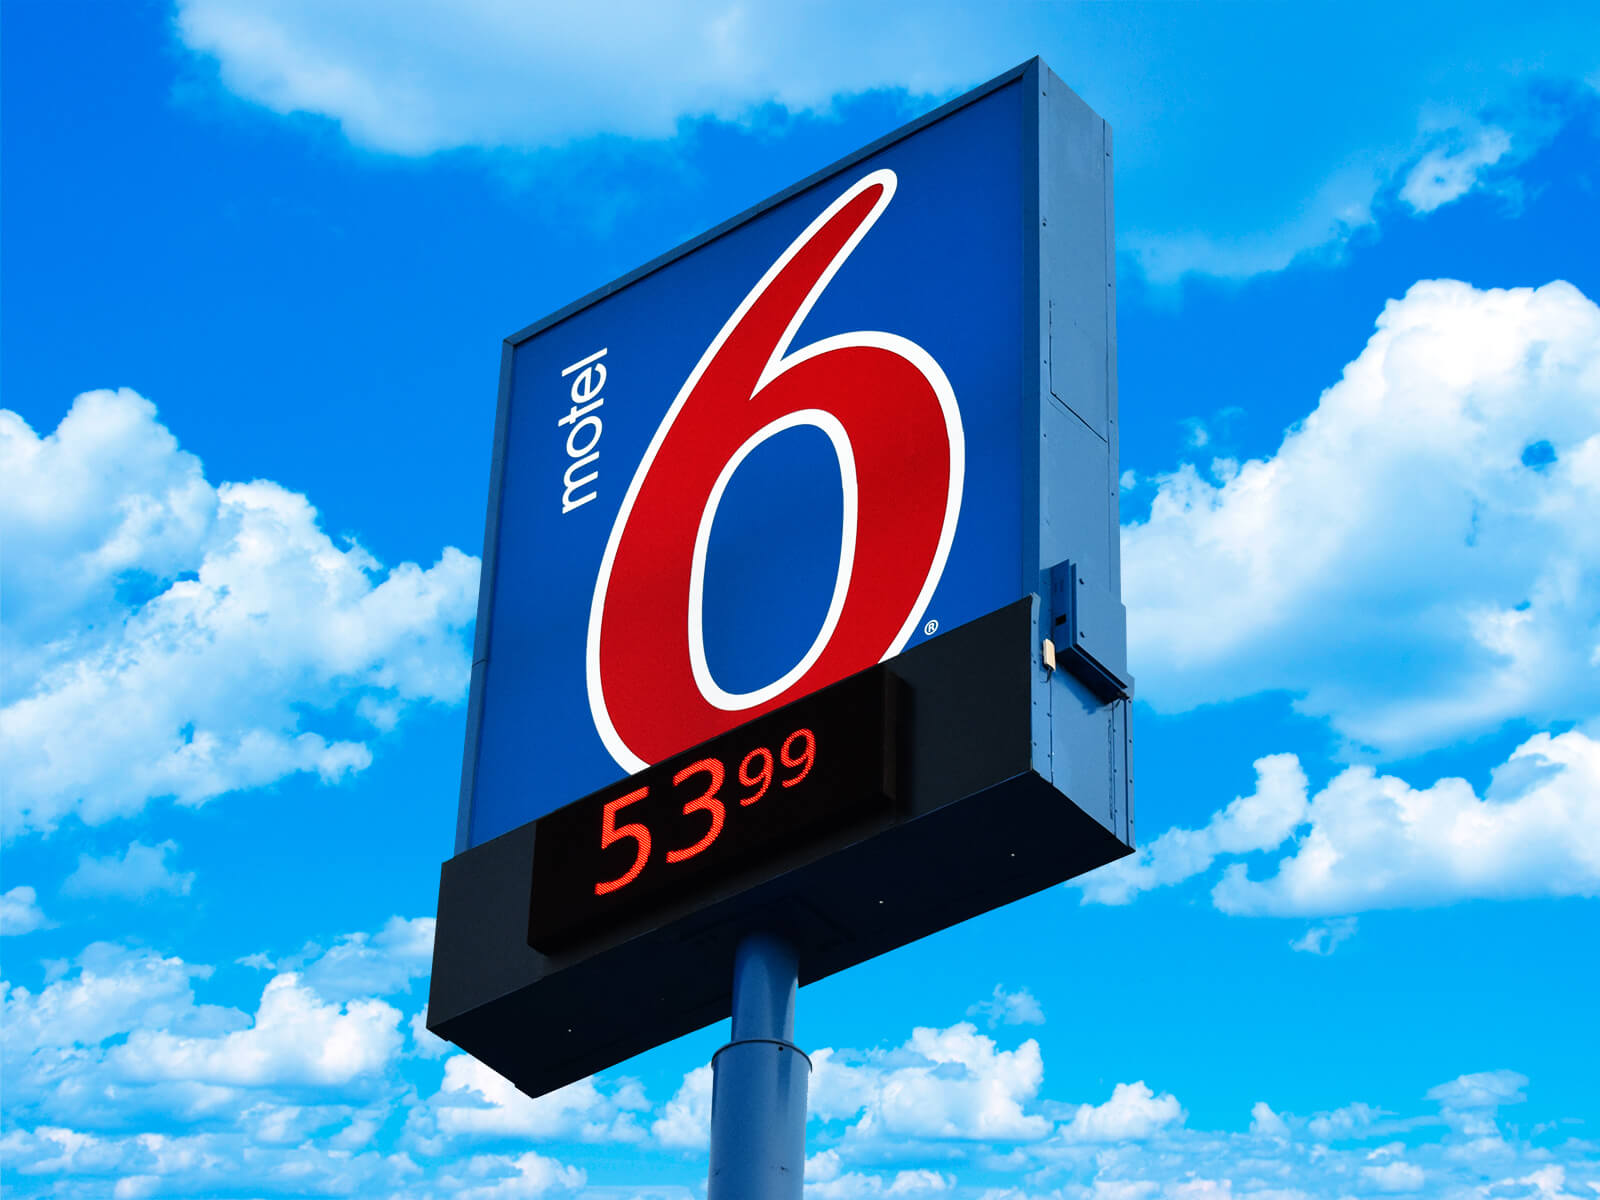 Motel 6 flex face pylon sign with an LED message and price display center.